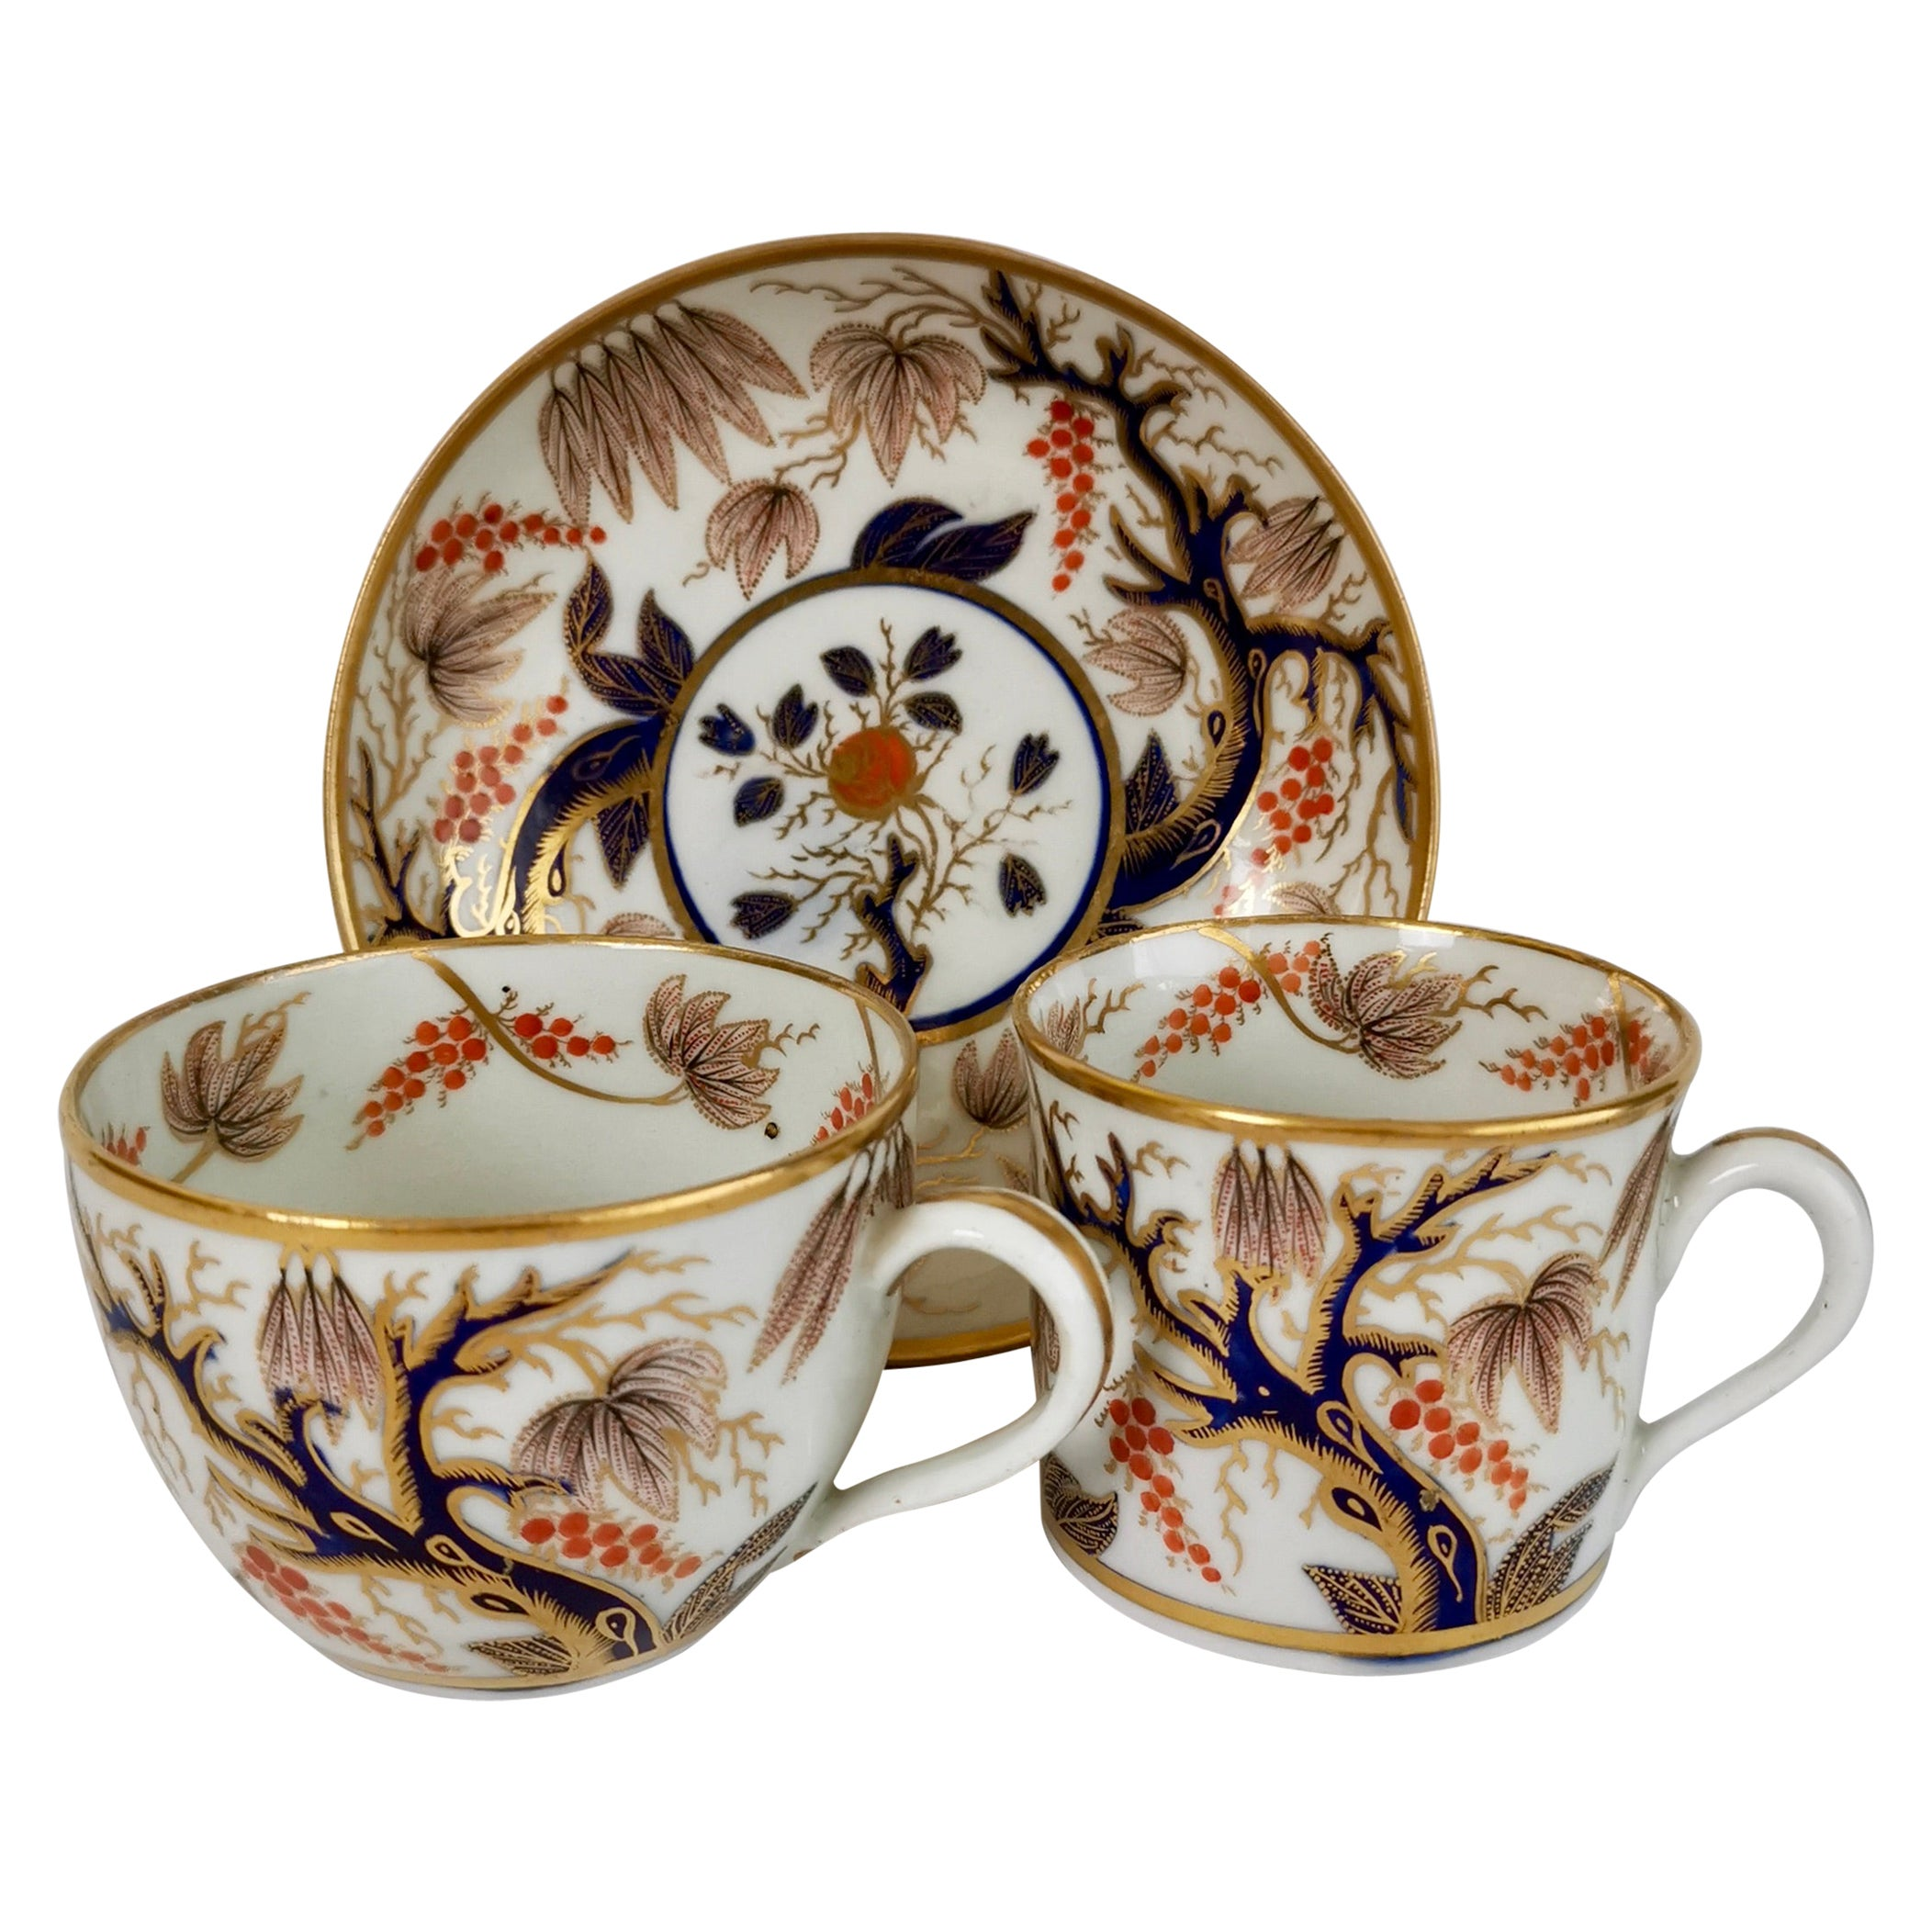 New Hall Porcelain Trio, Imari Vine Grey and Purple, Regency, circa 1810